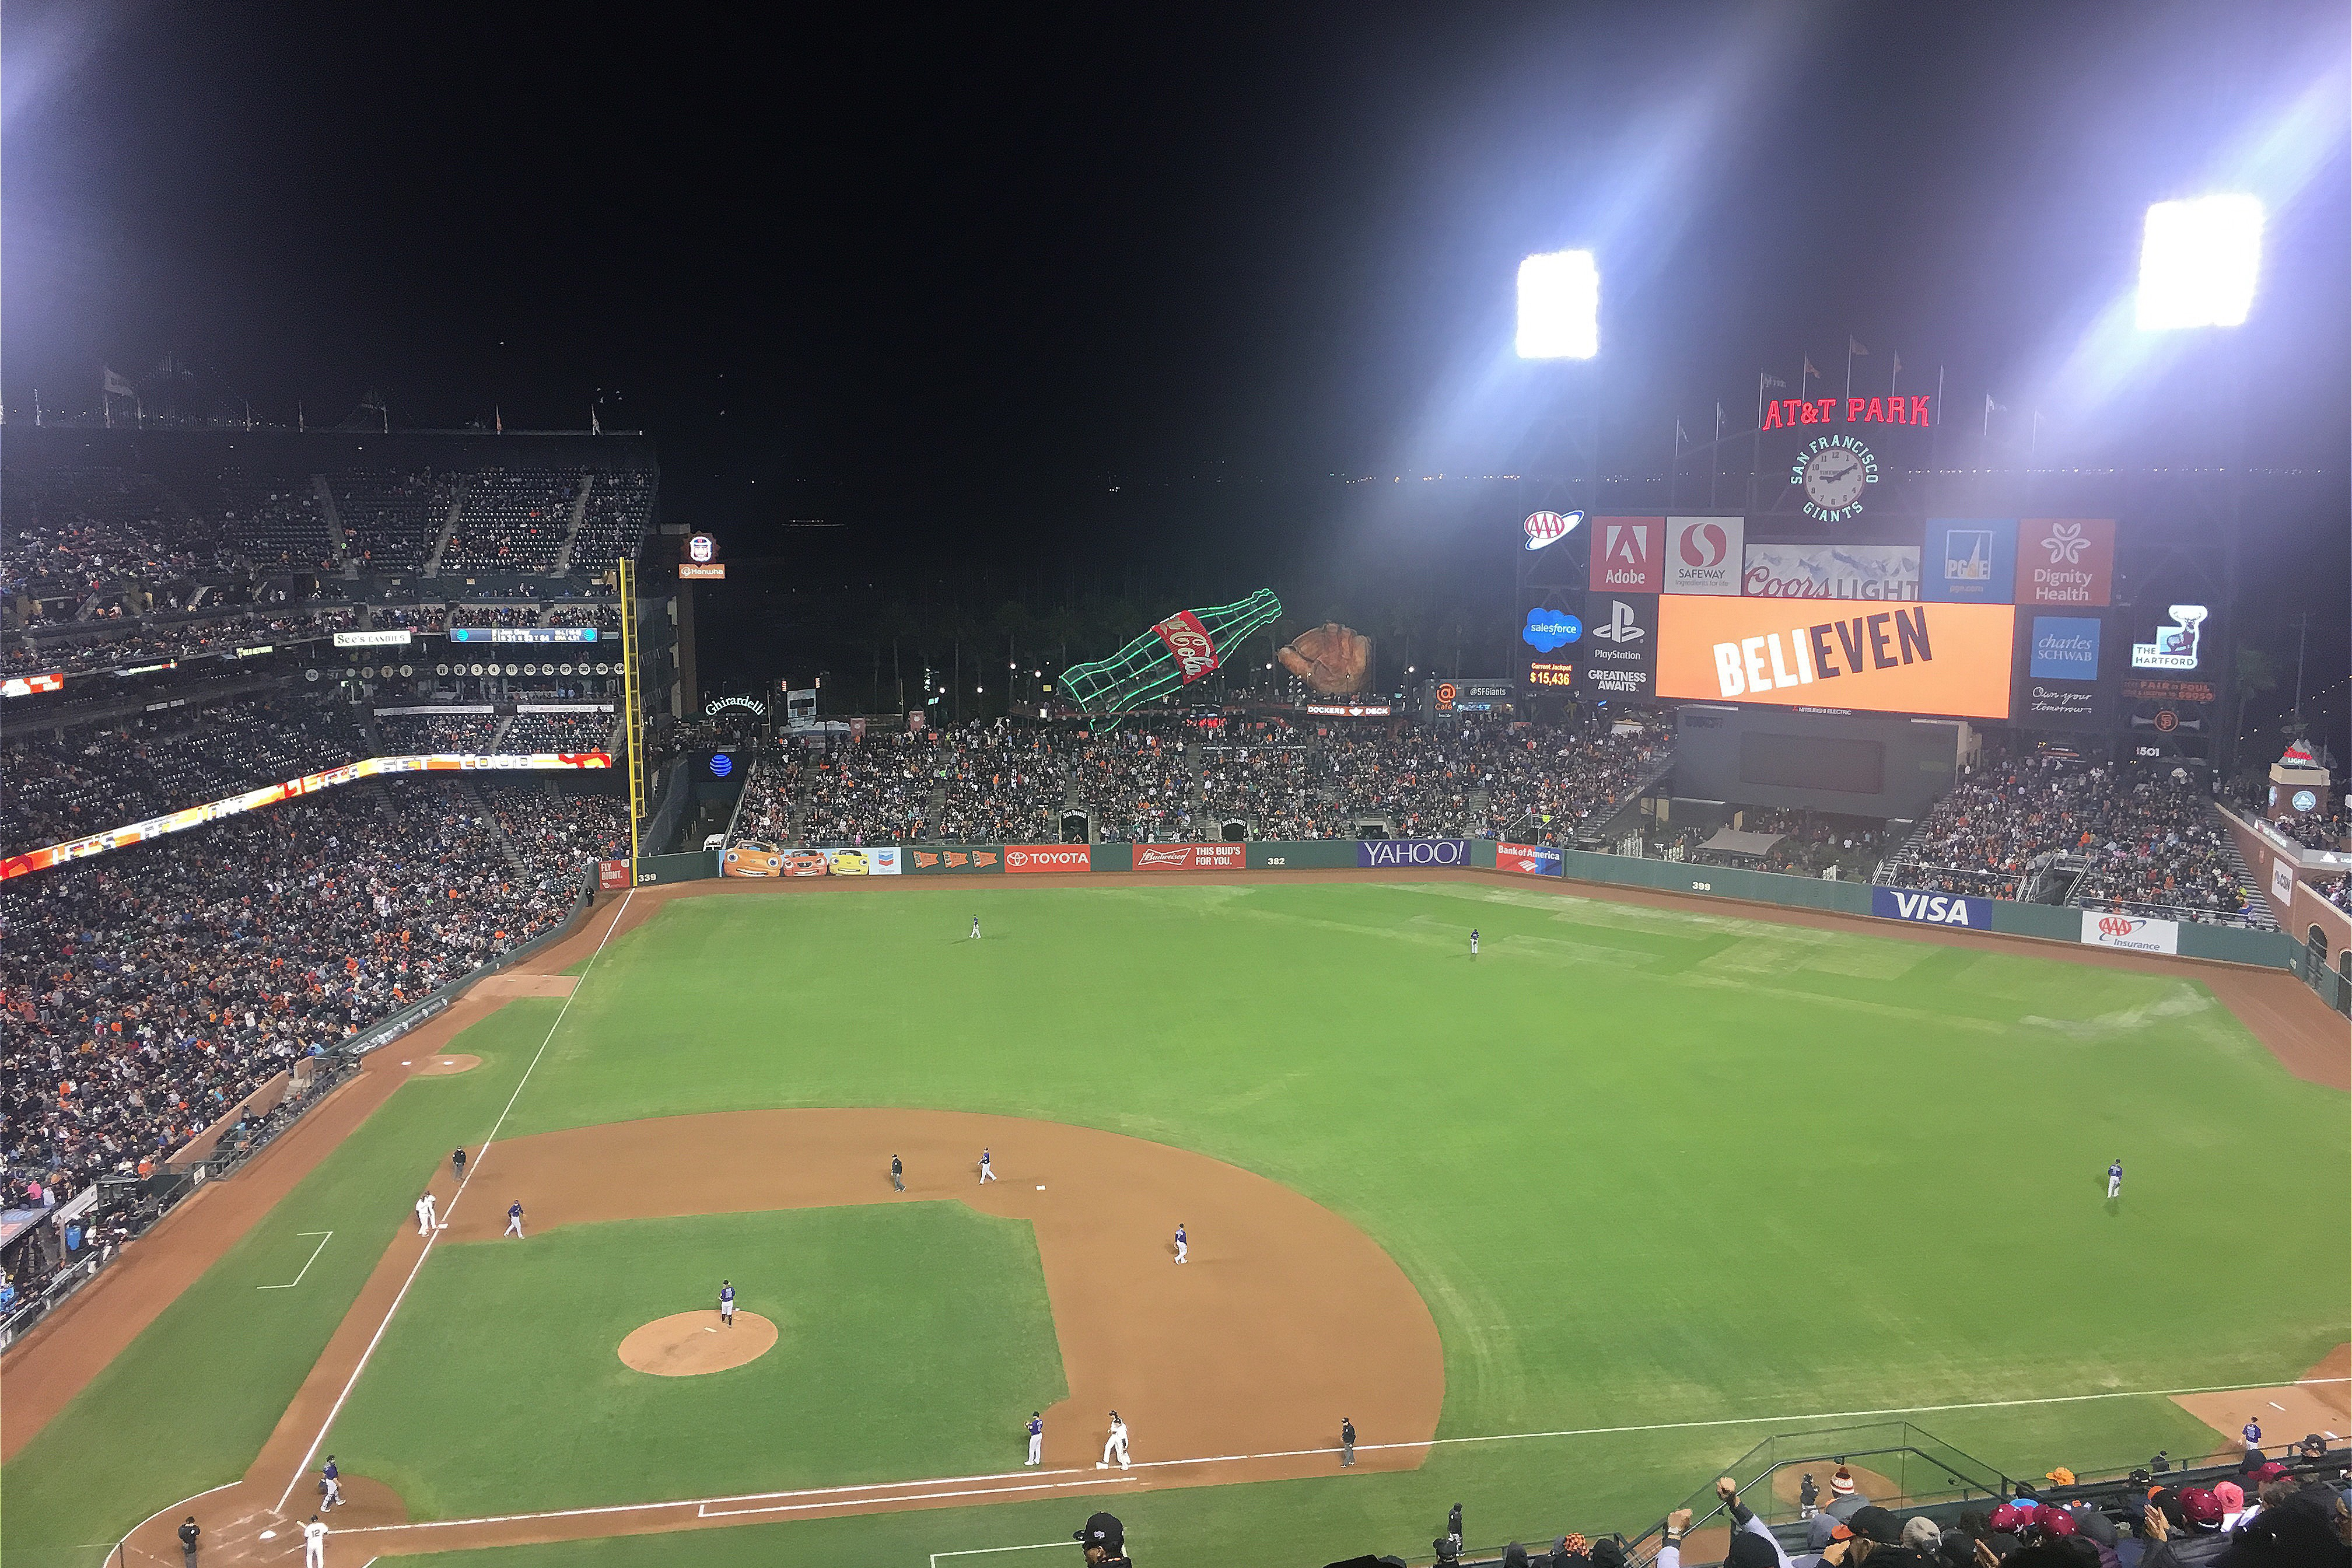 I was at the Giants game against the Rockies last night. Beli-EVEN magic happened